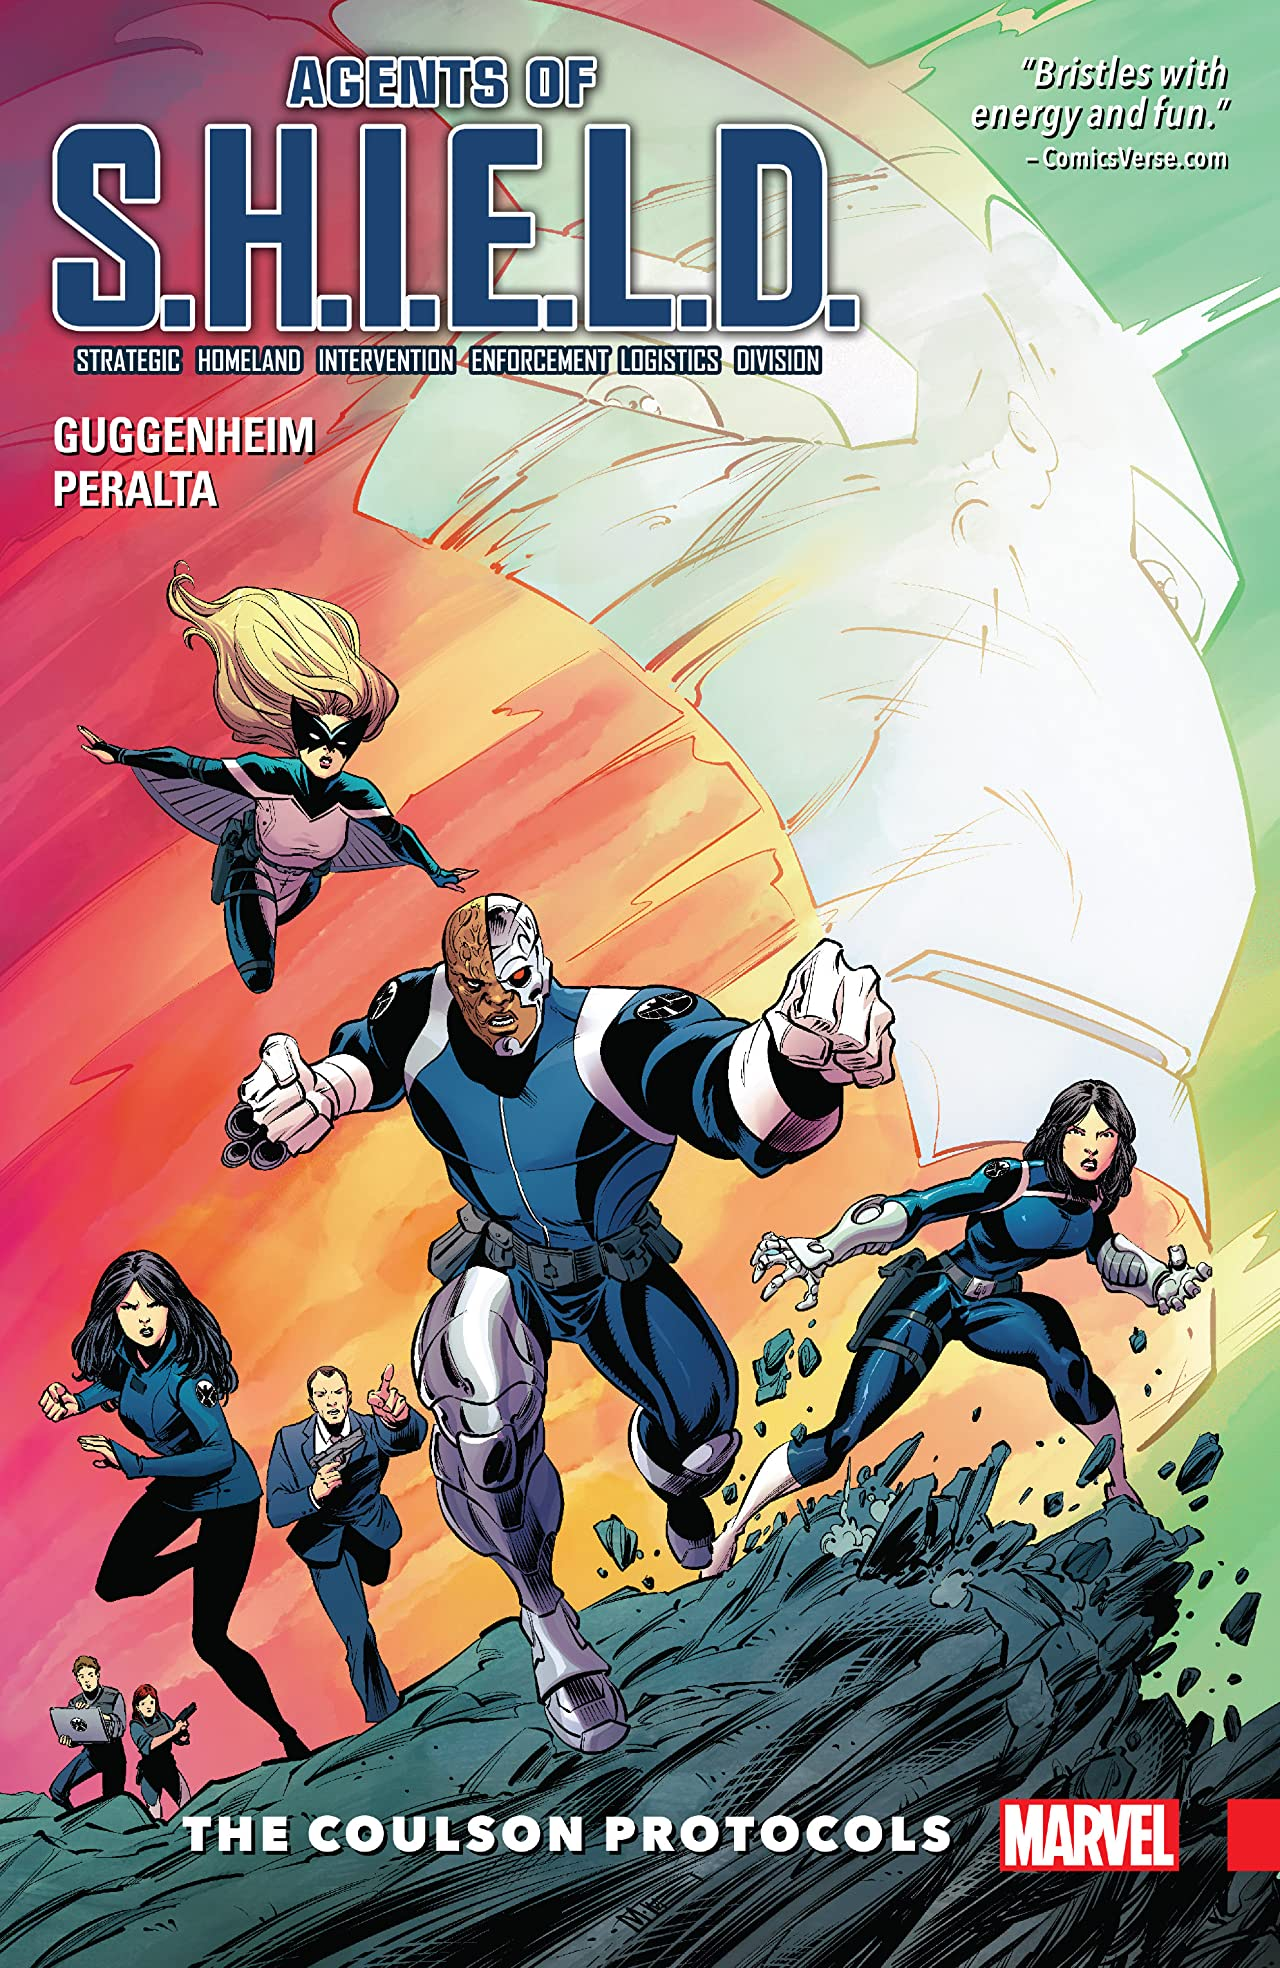 Agents of S.H.I.E.L.D. Vol. 1: The Coulson Protocols